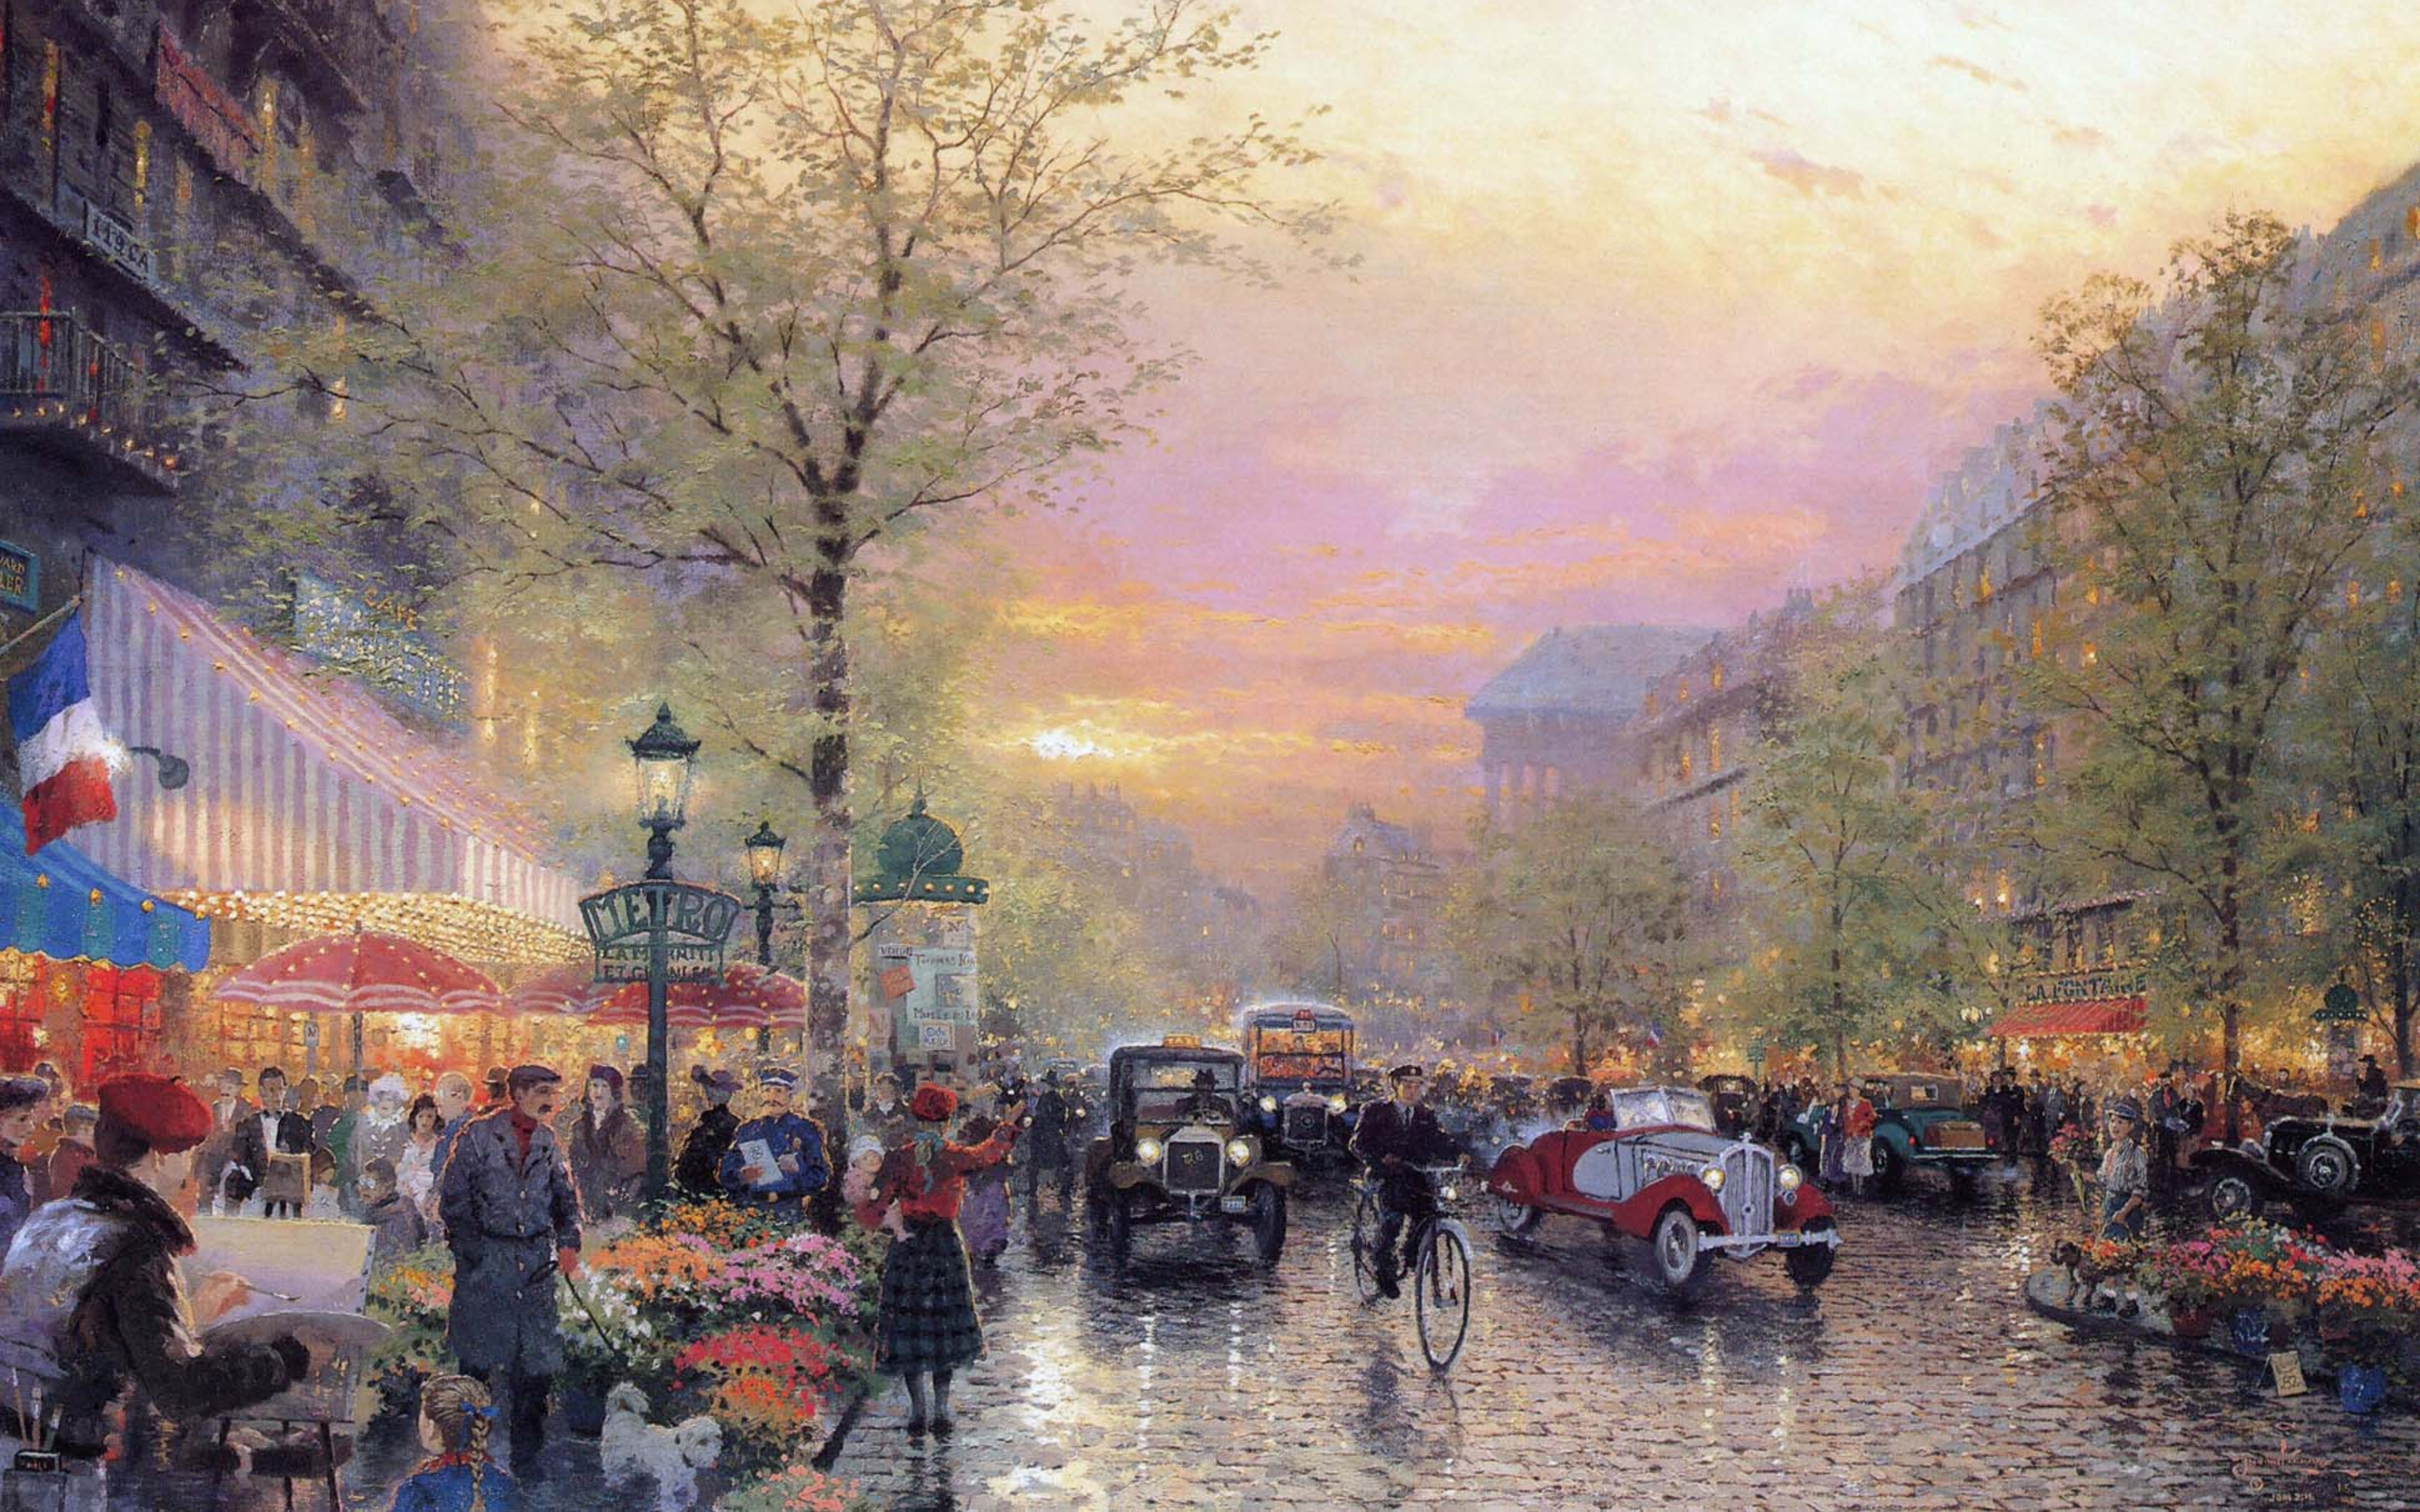 des lumieres at dusk thomas kinkade art painting france wallpaper 2560x1600